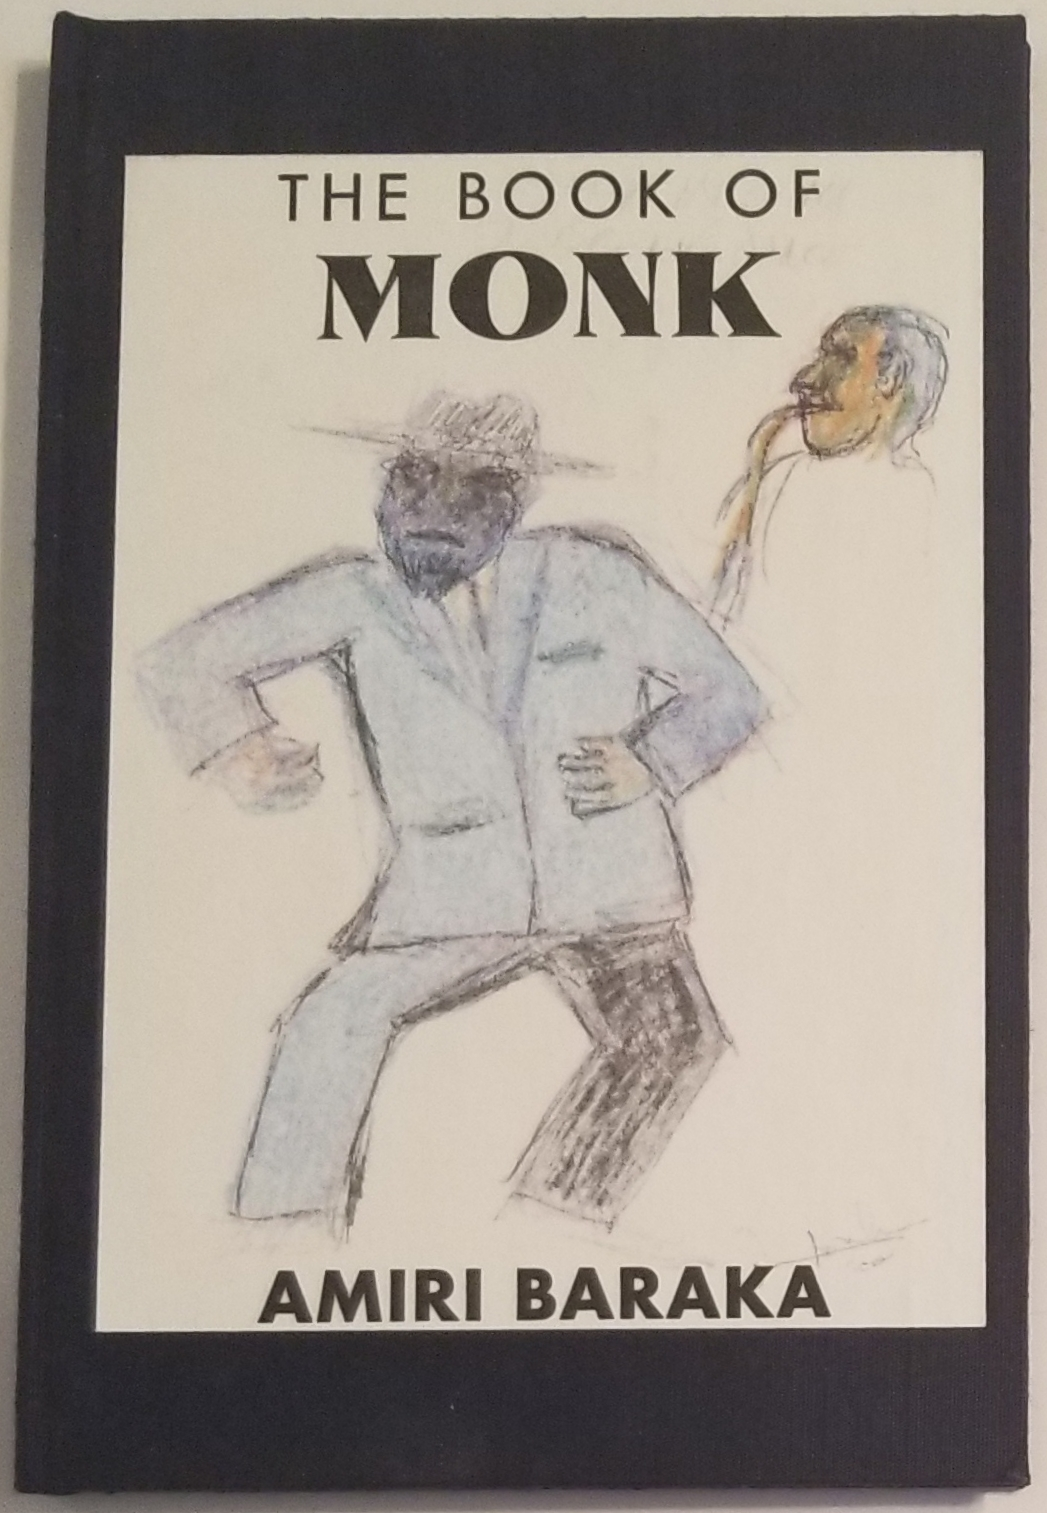 THE BOOK OF MONK[1/10 SPECIAL SIGNED HARDCOVER COPIES]. Amiri Baraka, aka LeRoi Jones.